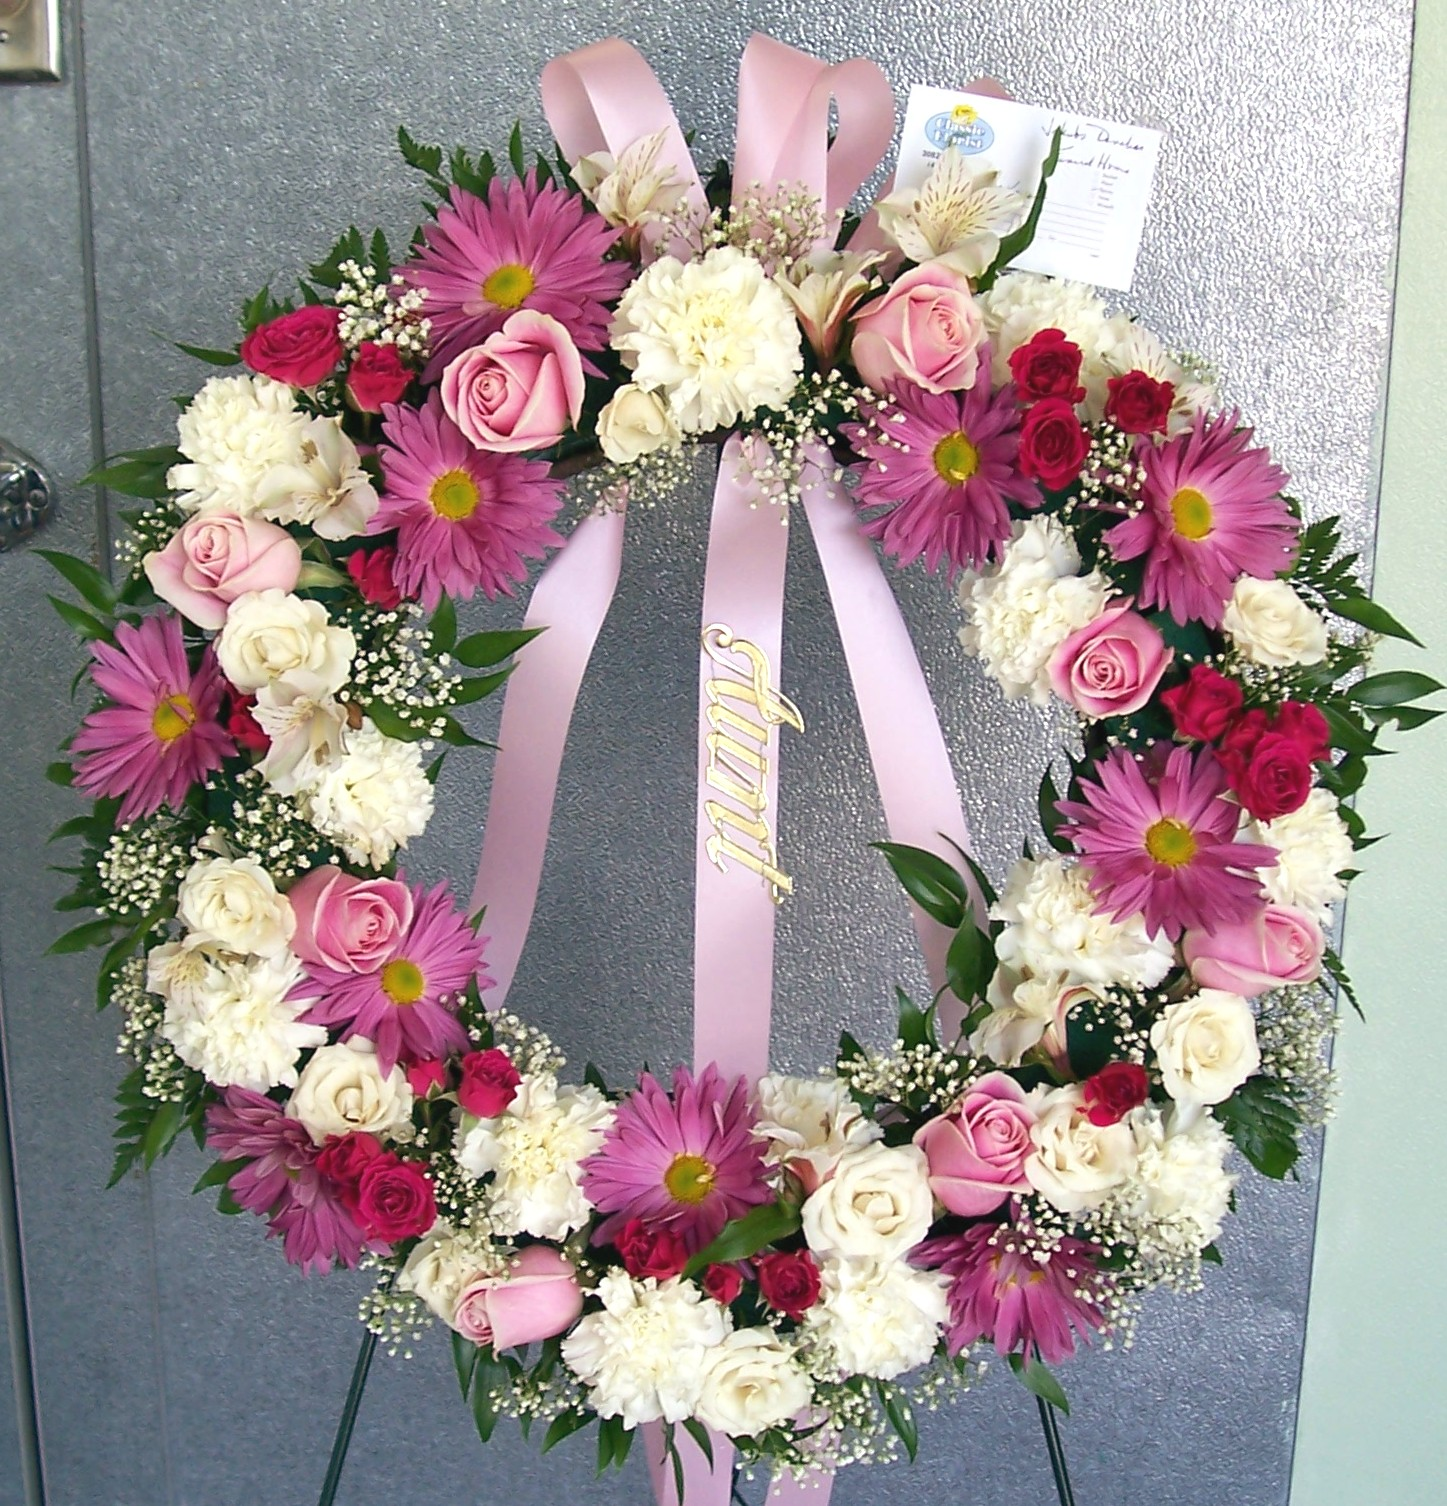 Flower arrangements might be your idea funeral flower arrangements